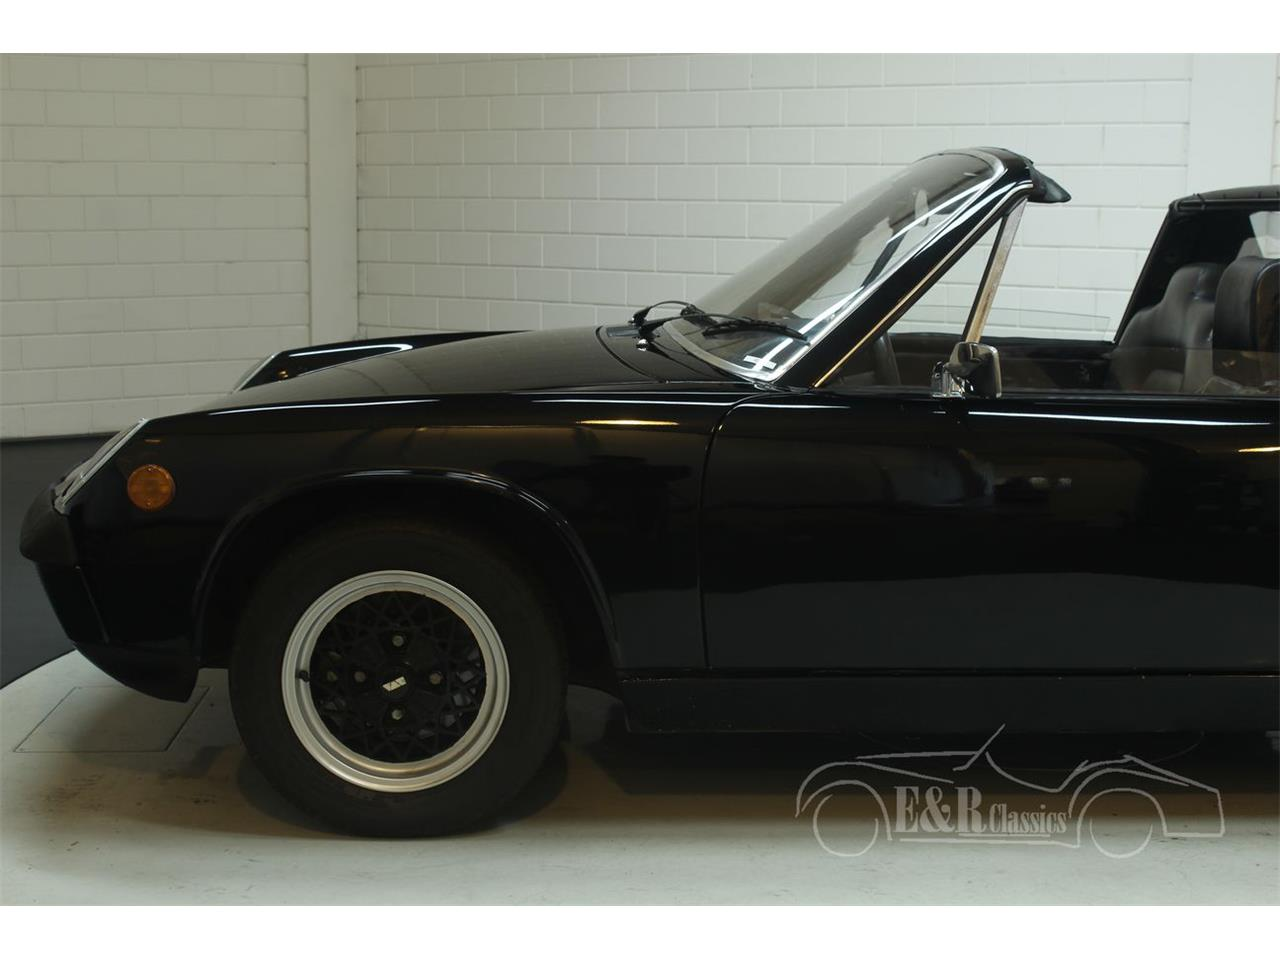 Large Picture of Classic '71 Porsche 914 located in Noord-Brabant - $20,450.00 Offered by E & R Classics - PB2R